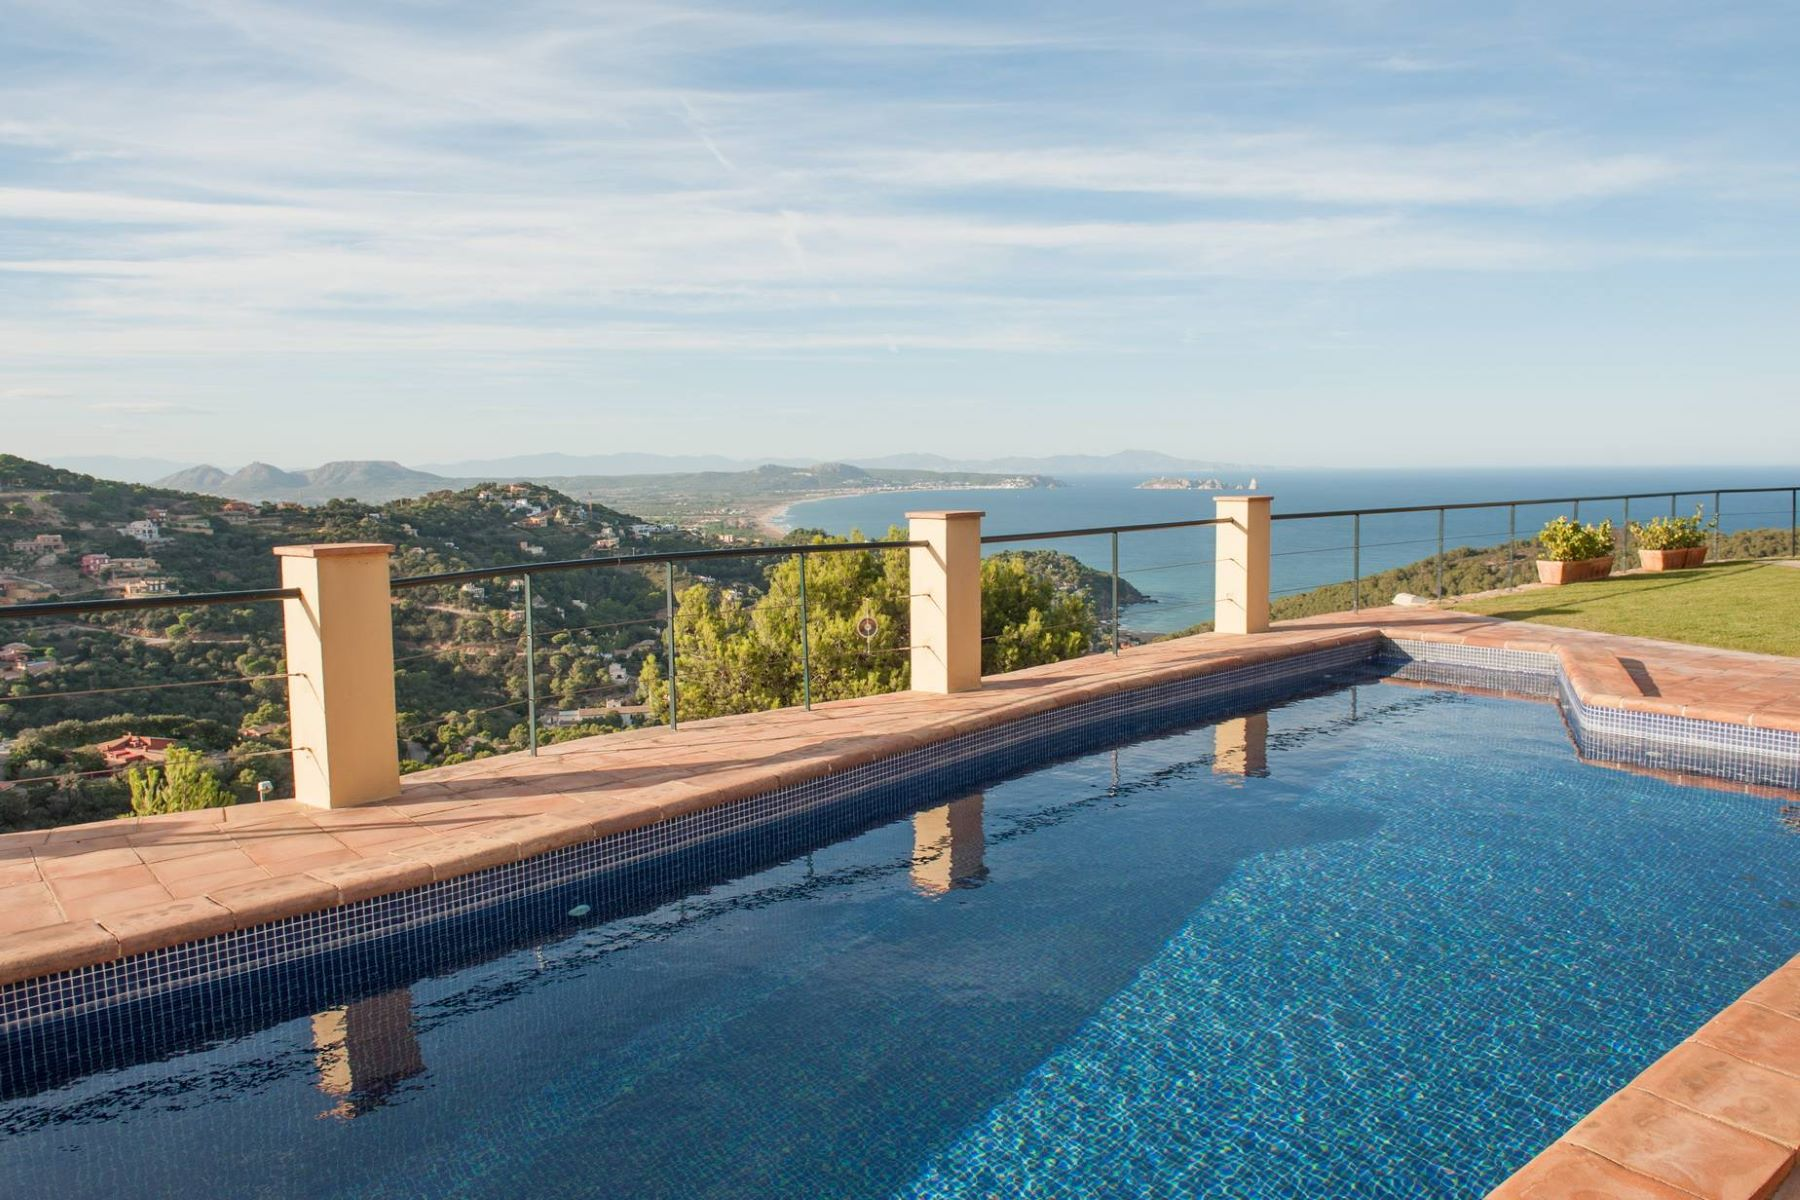 Single Family Home for Sale at Mediterranean house with sea views, walk to Begur Begur, Costa Brava, 17255 Spain